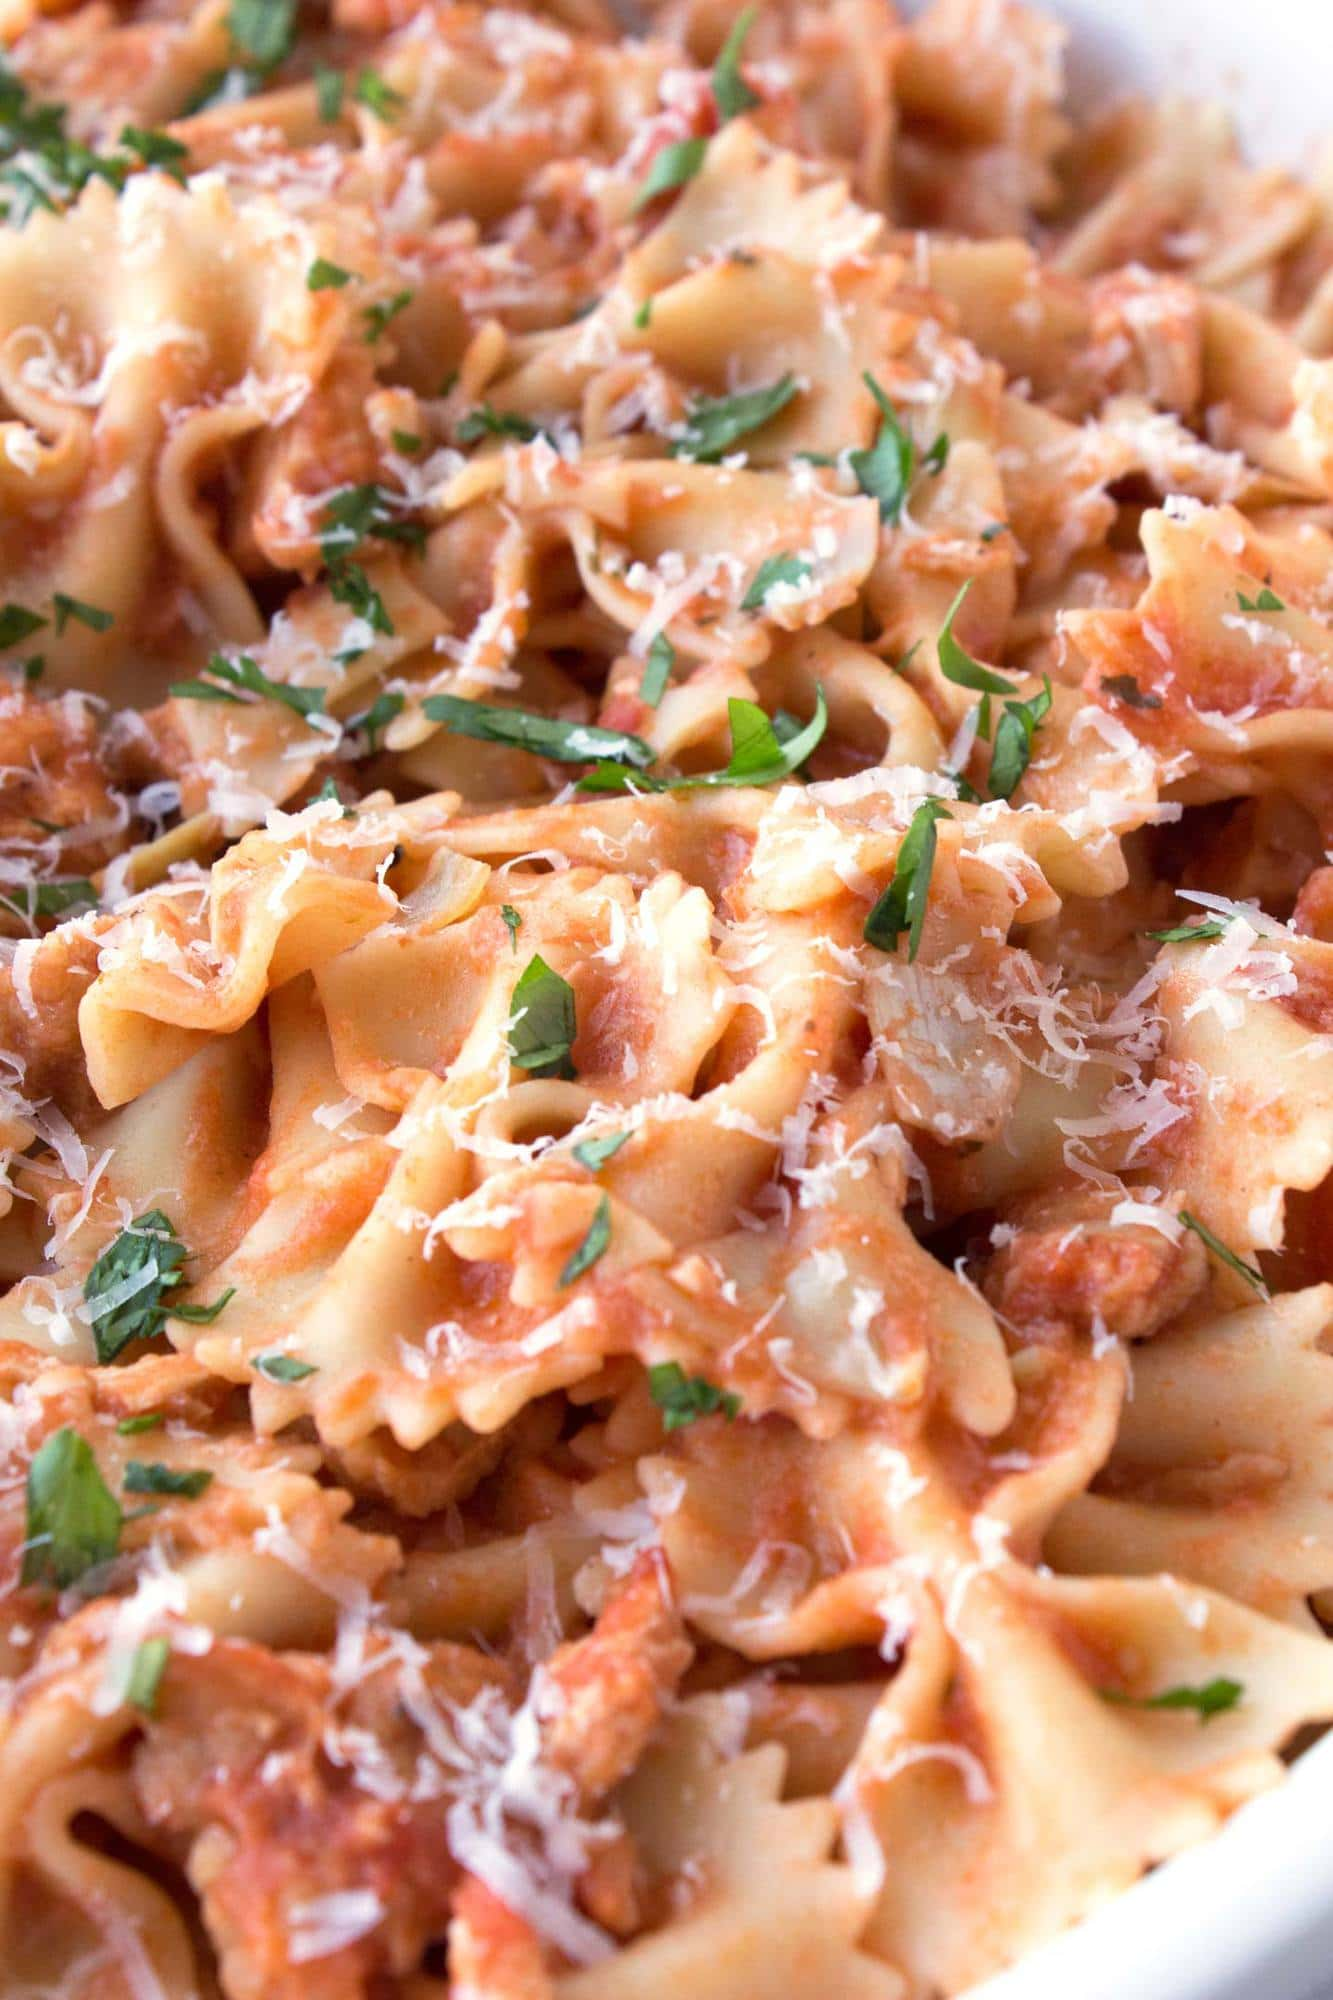 Close up of bowl of Easy Chicken Piccata Pasta with parmesan cheese and parsley on top